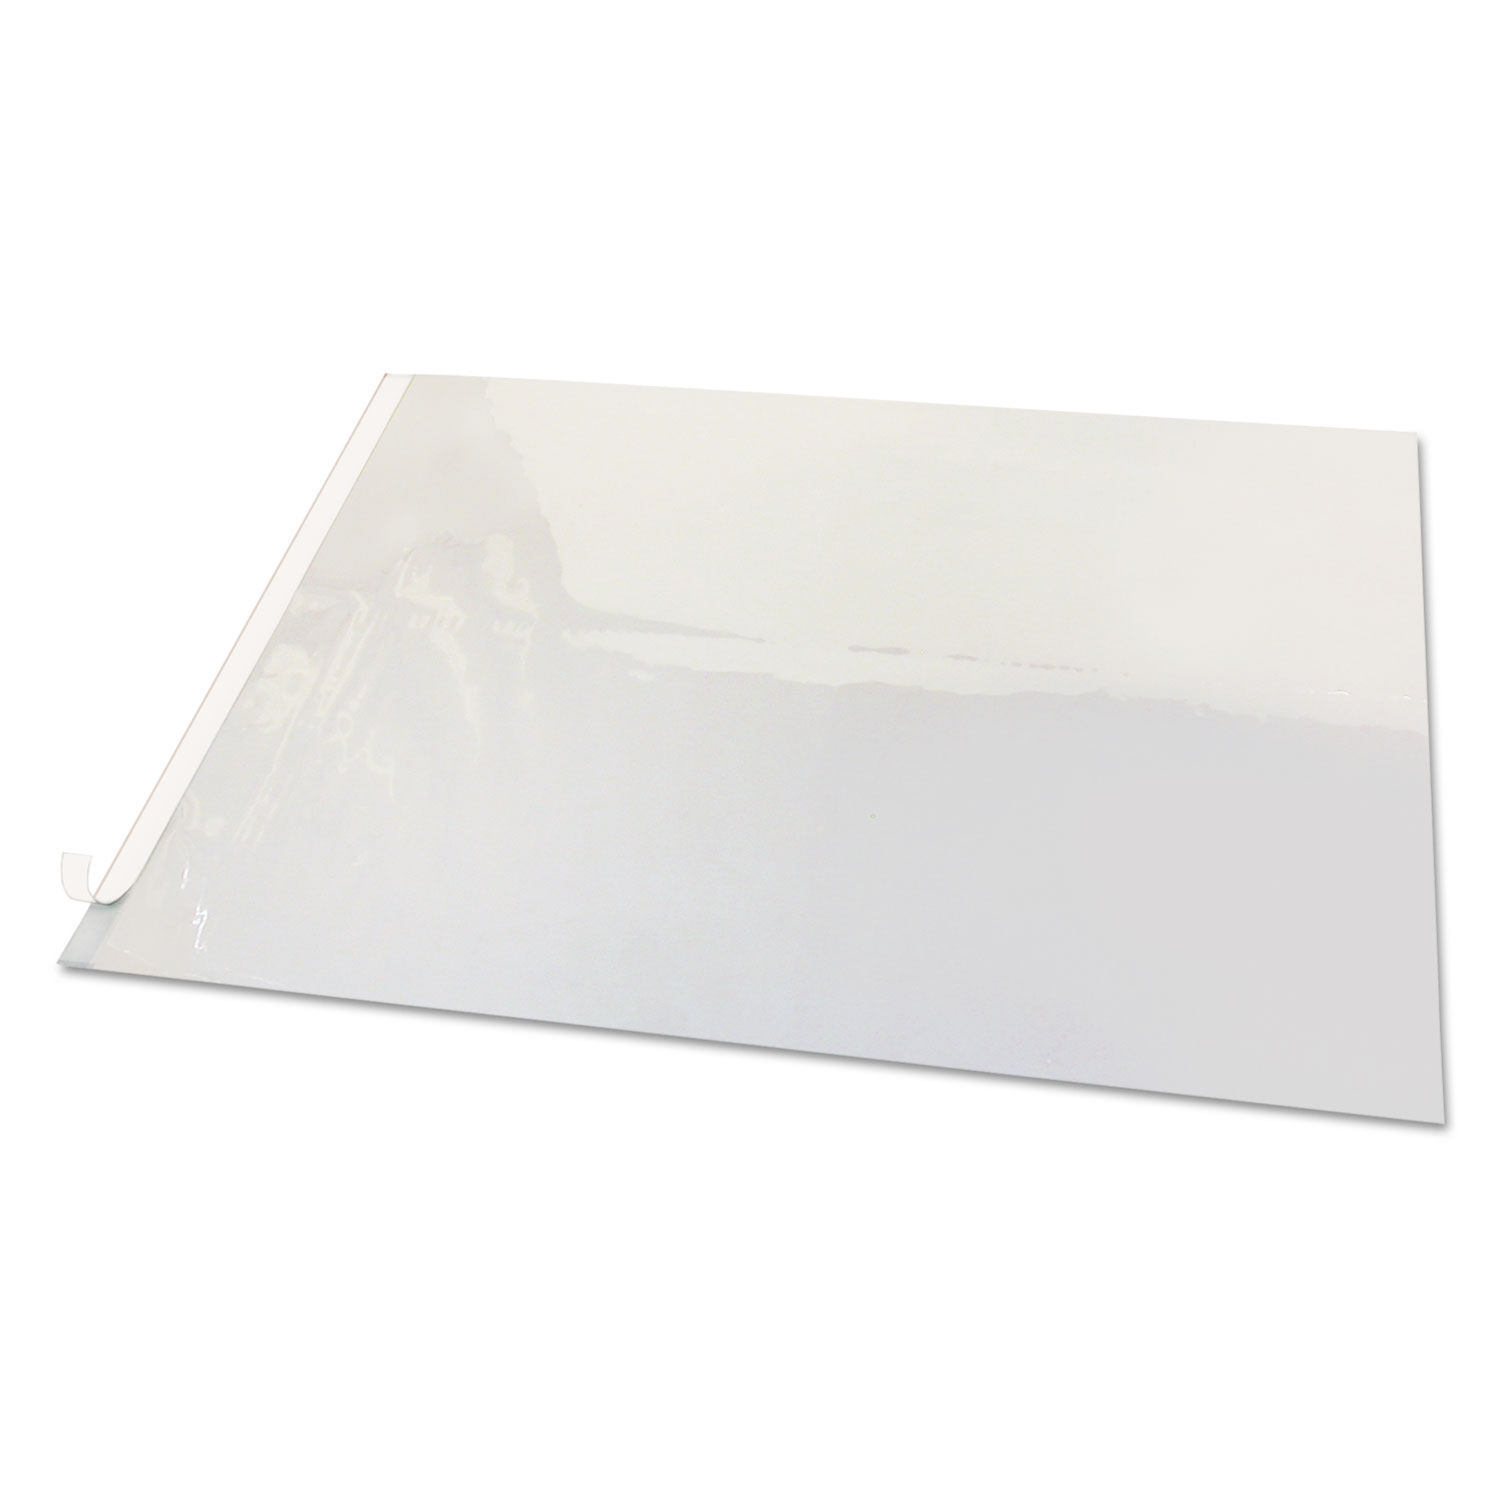 Second Sight Clear Plastic Desk Protector By Artistic